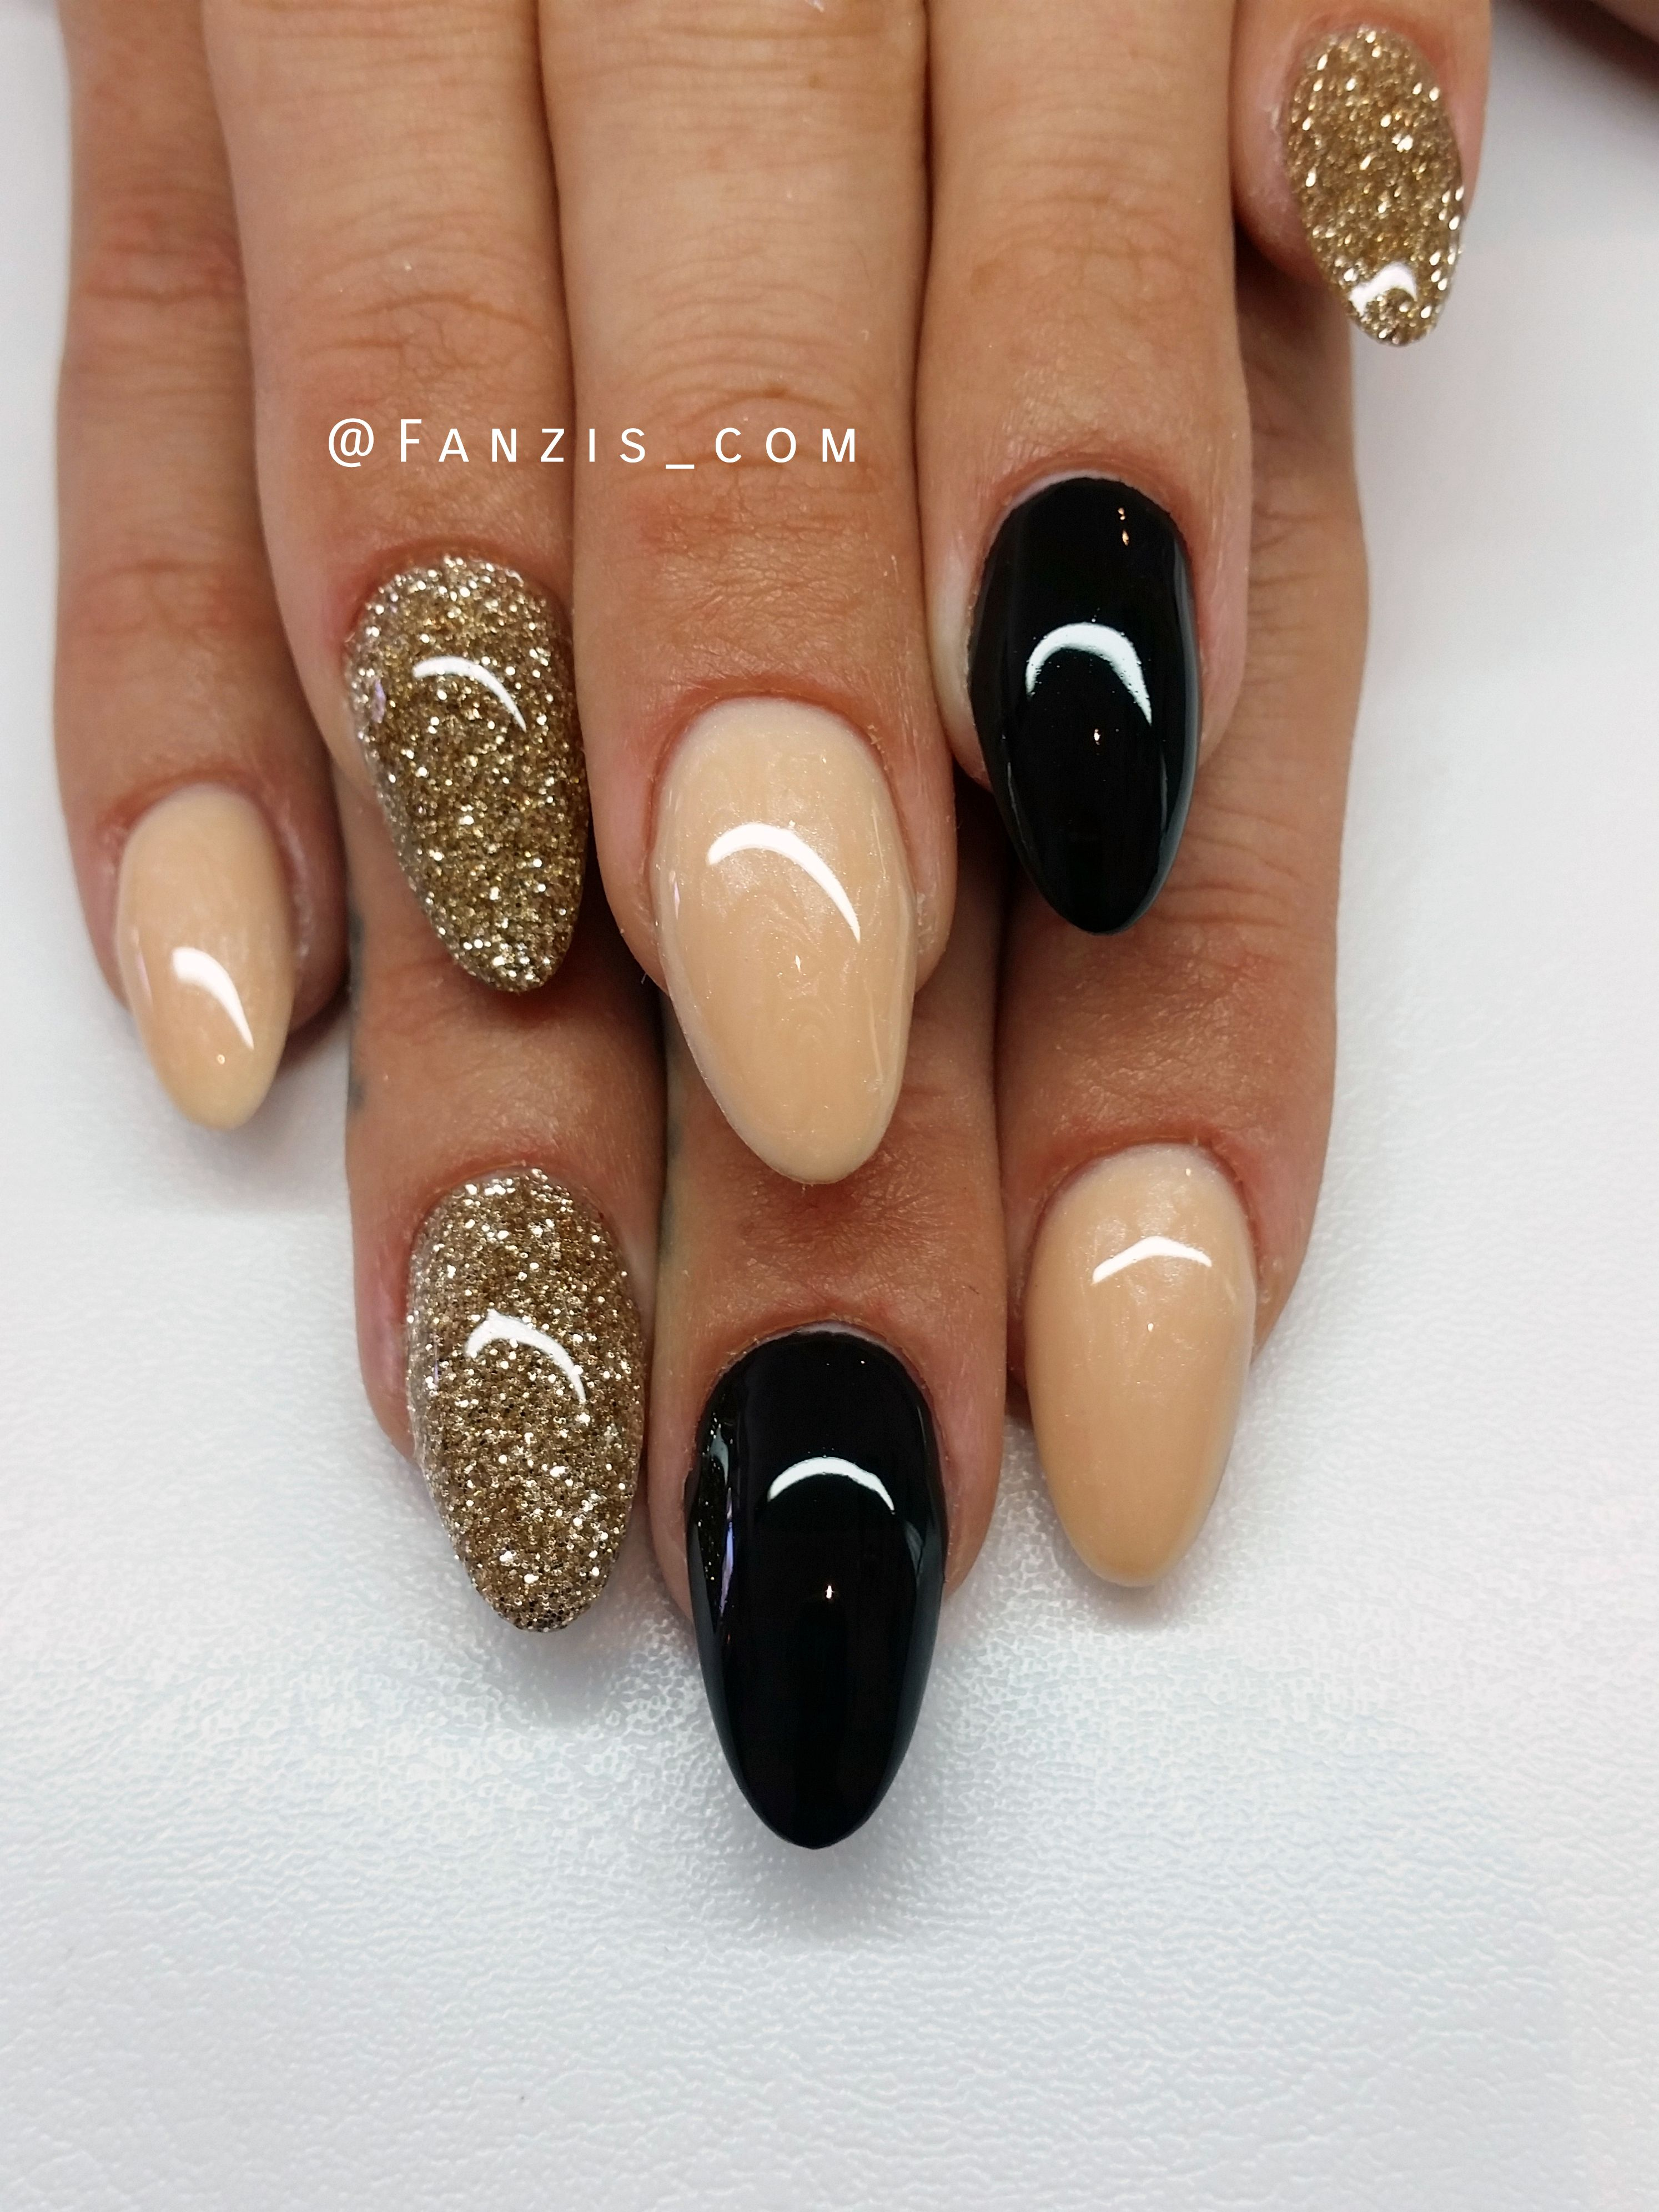 nails.quenalbertini: Nude, gold and black nails | fanzis_com ...